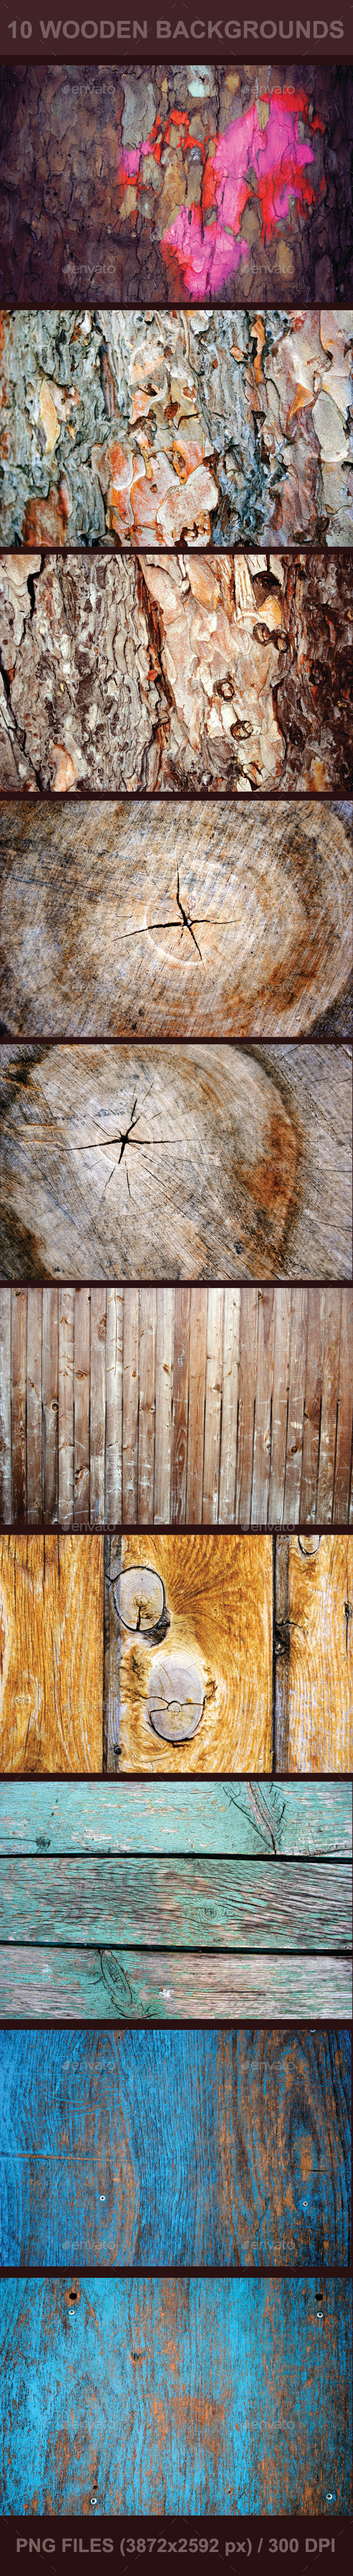 10 Wooden Backgrounds - Wood Textures